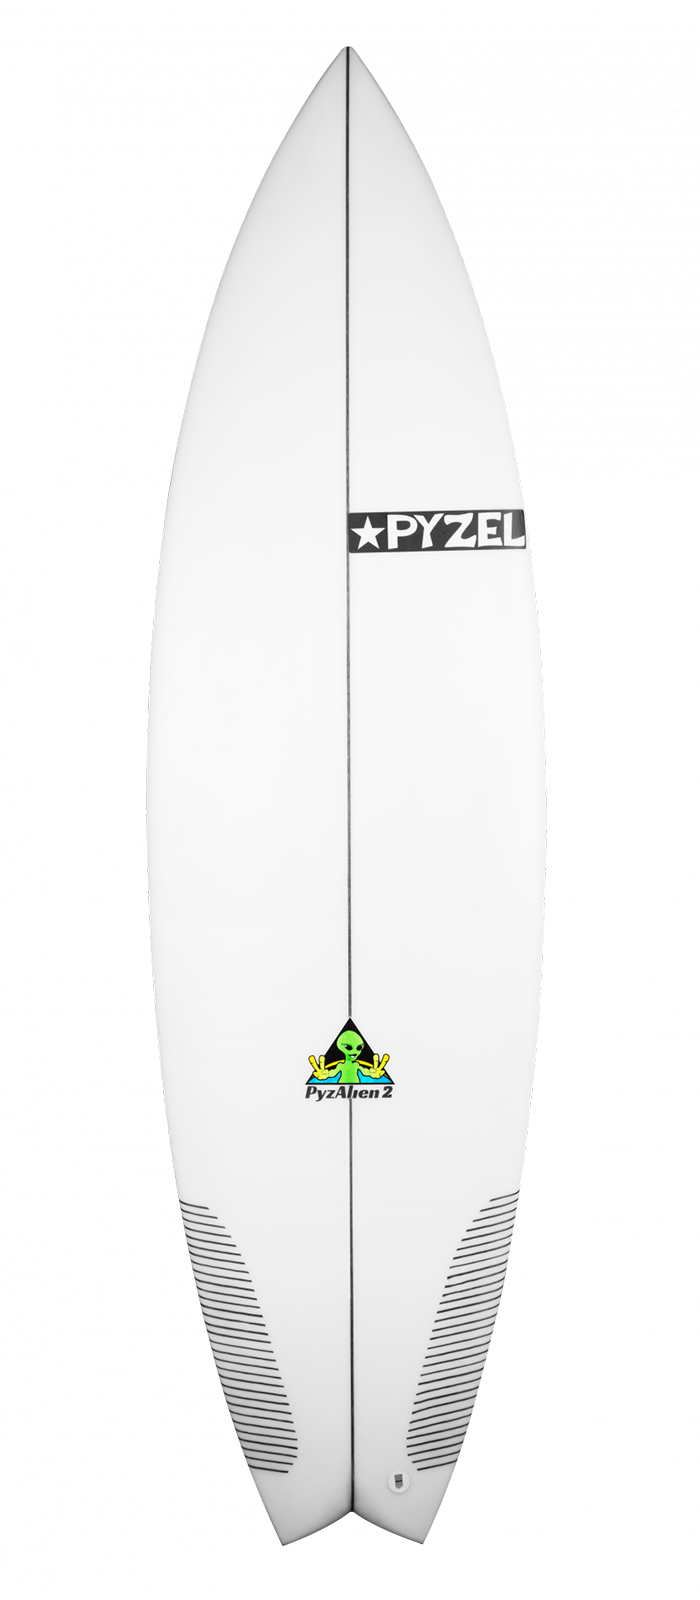 PYZALIEN II surfboard model deck